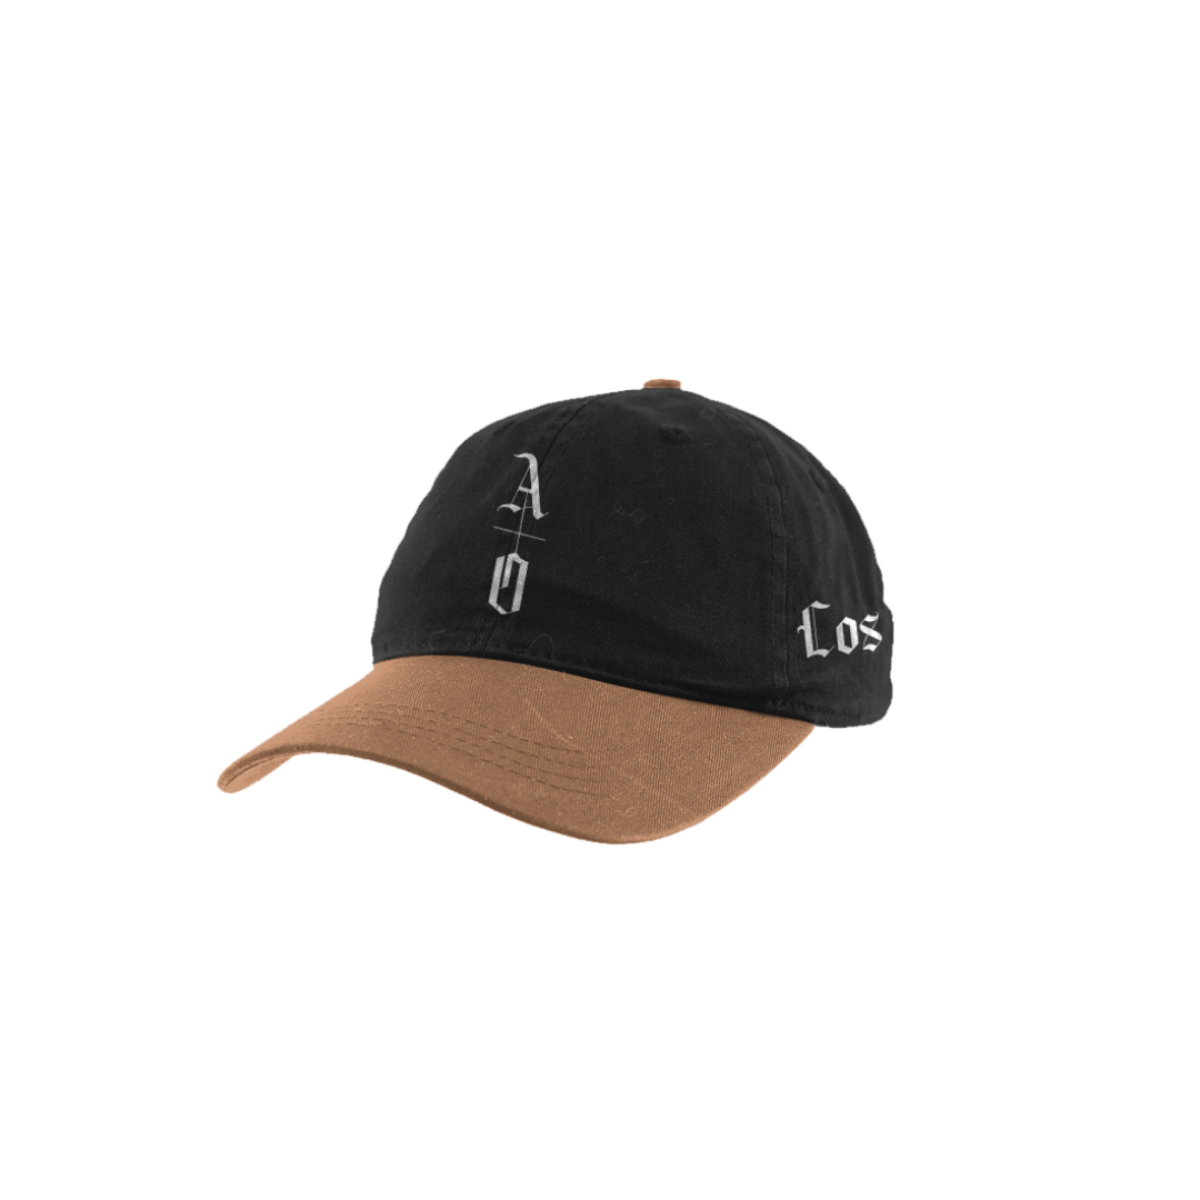 Los Dioses Two-Tone Hat